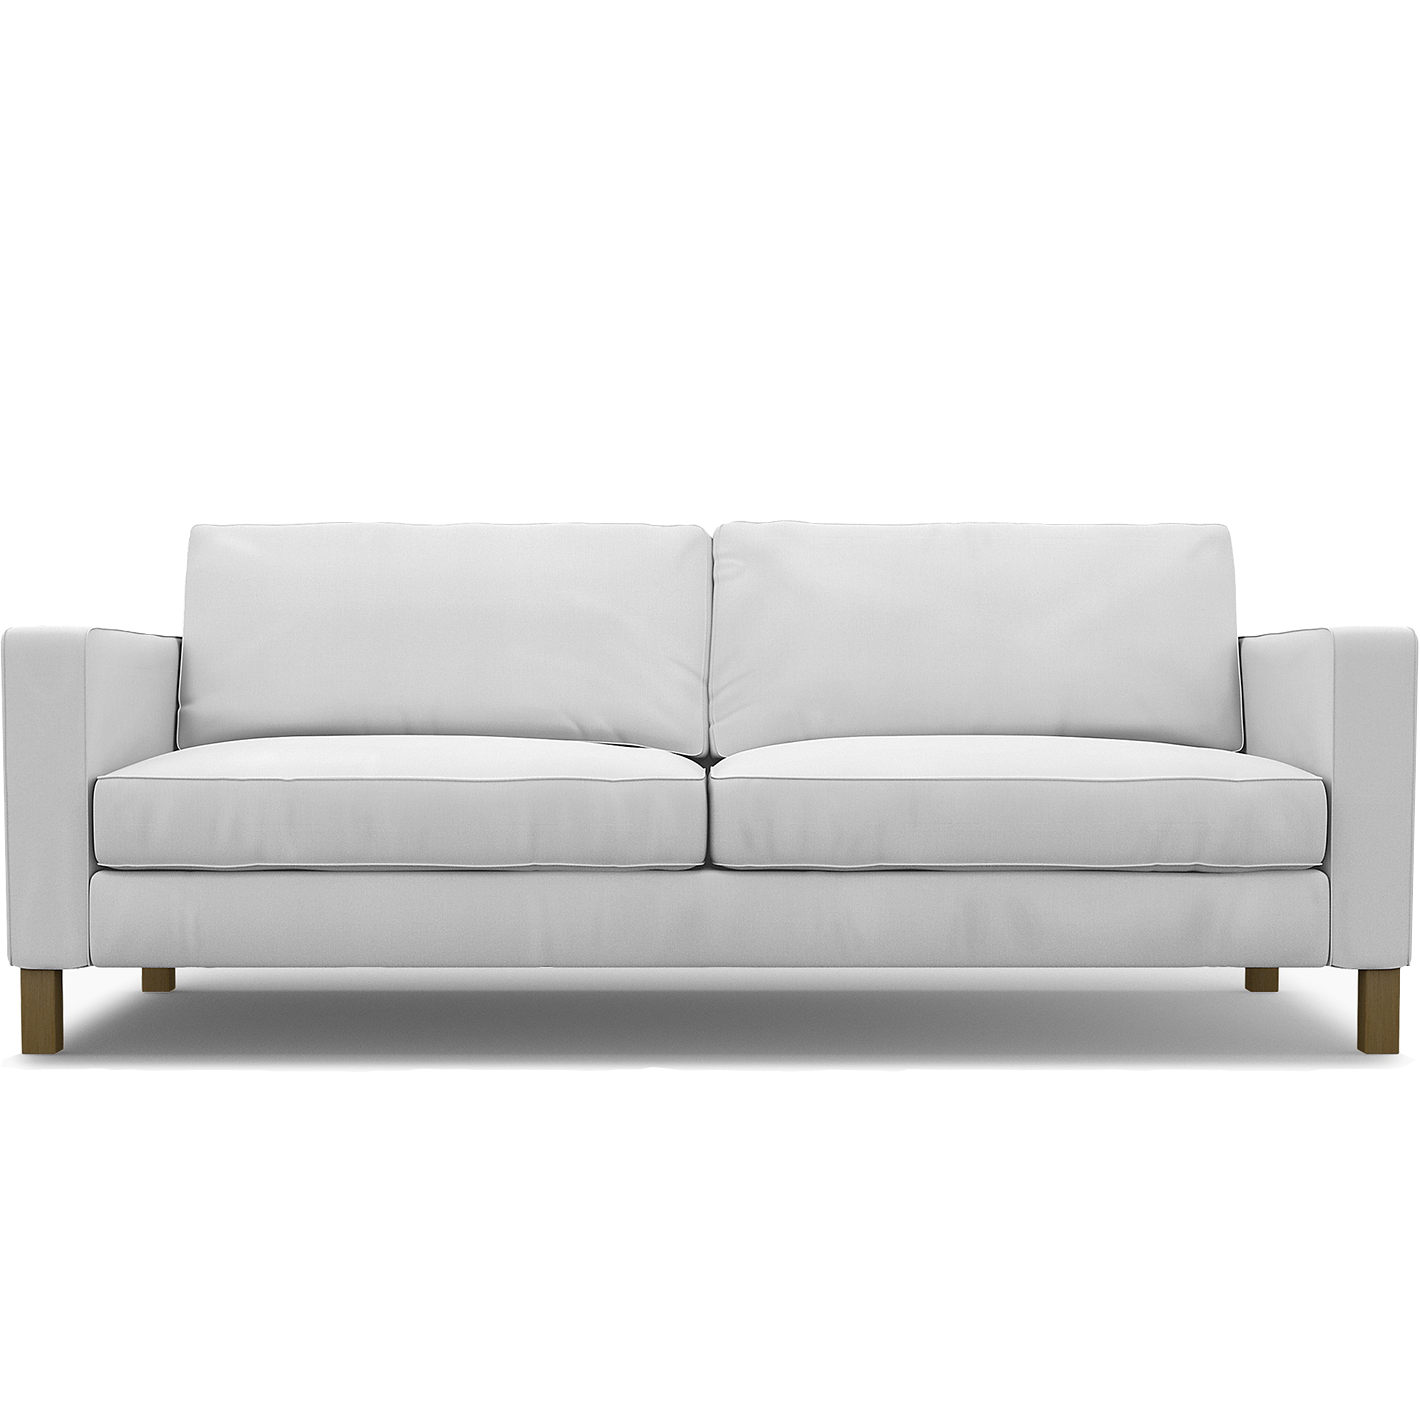 Slipcovers For Ikea Sofas Armchairs